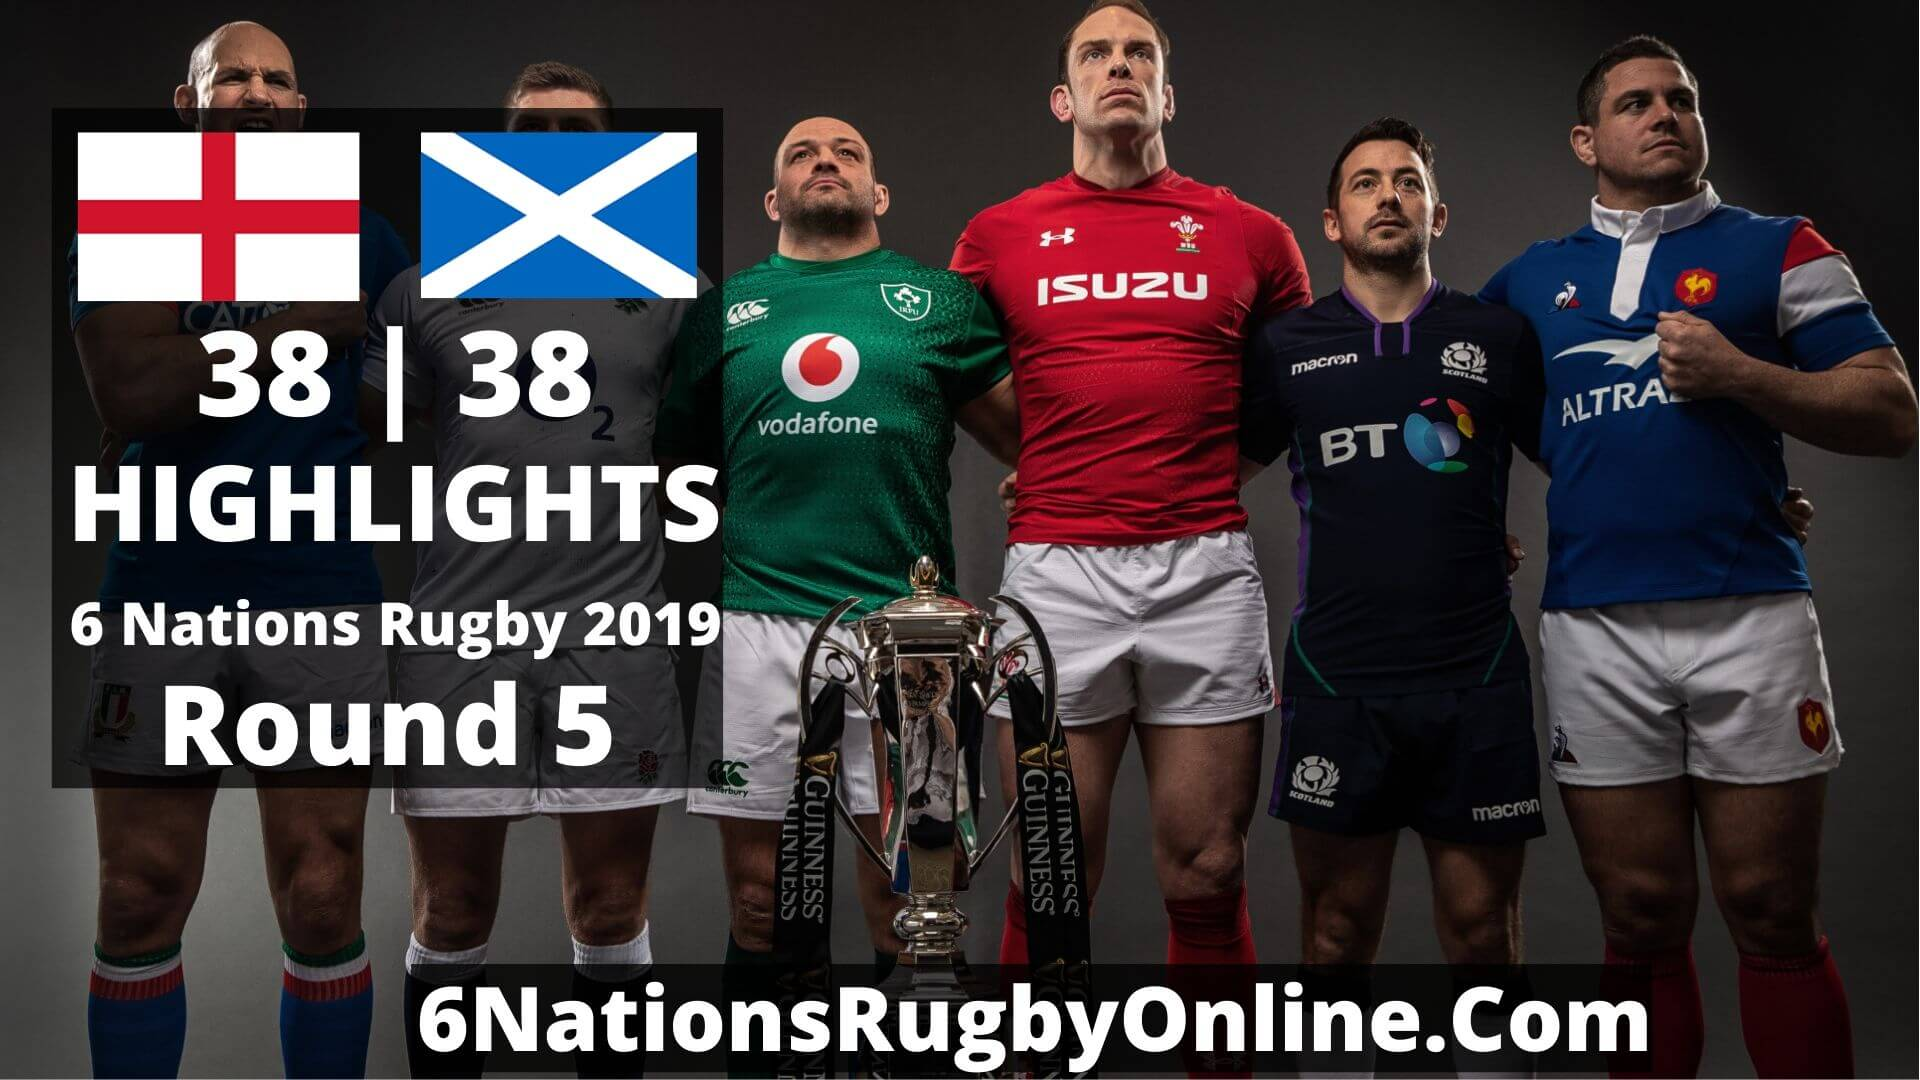 England Vs Scotland Highlights 2019 Six Nations Rugby Round 5